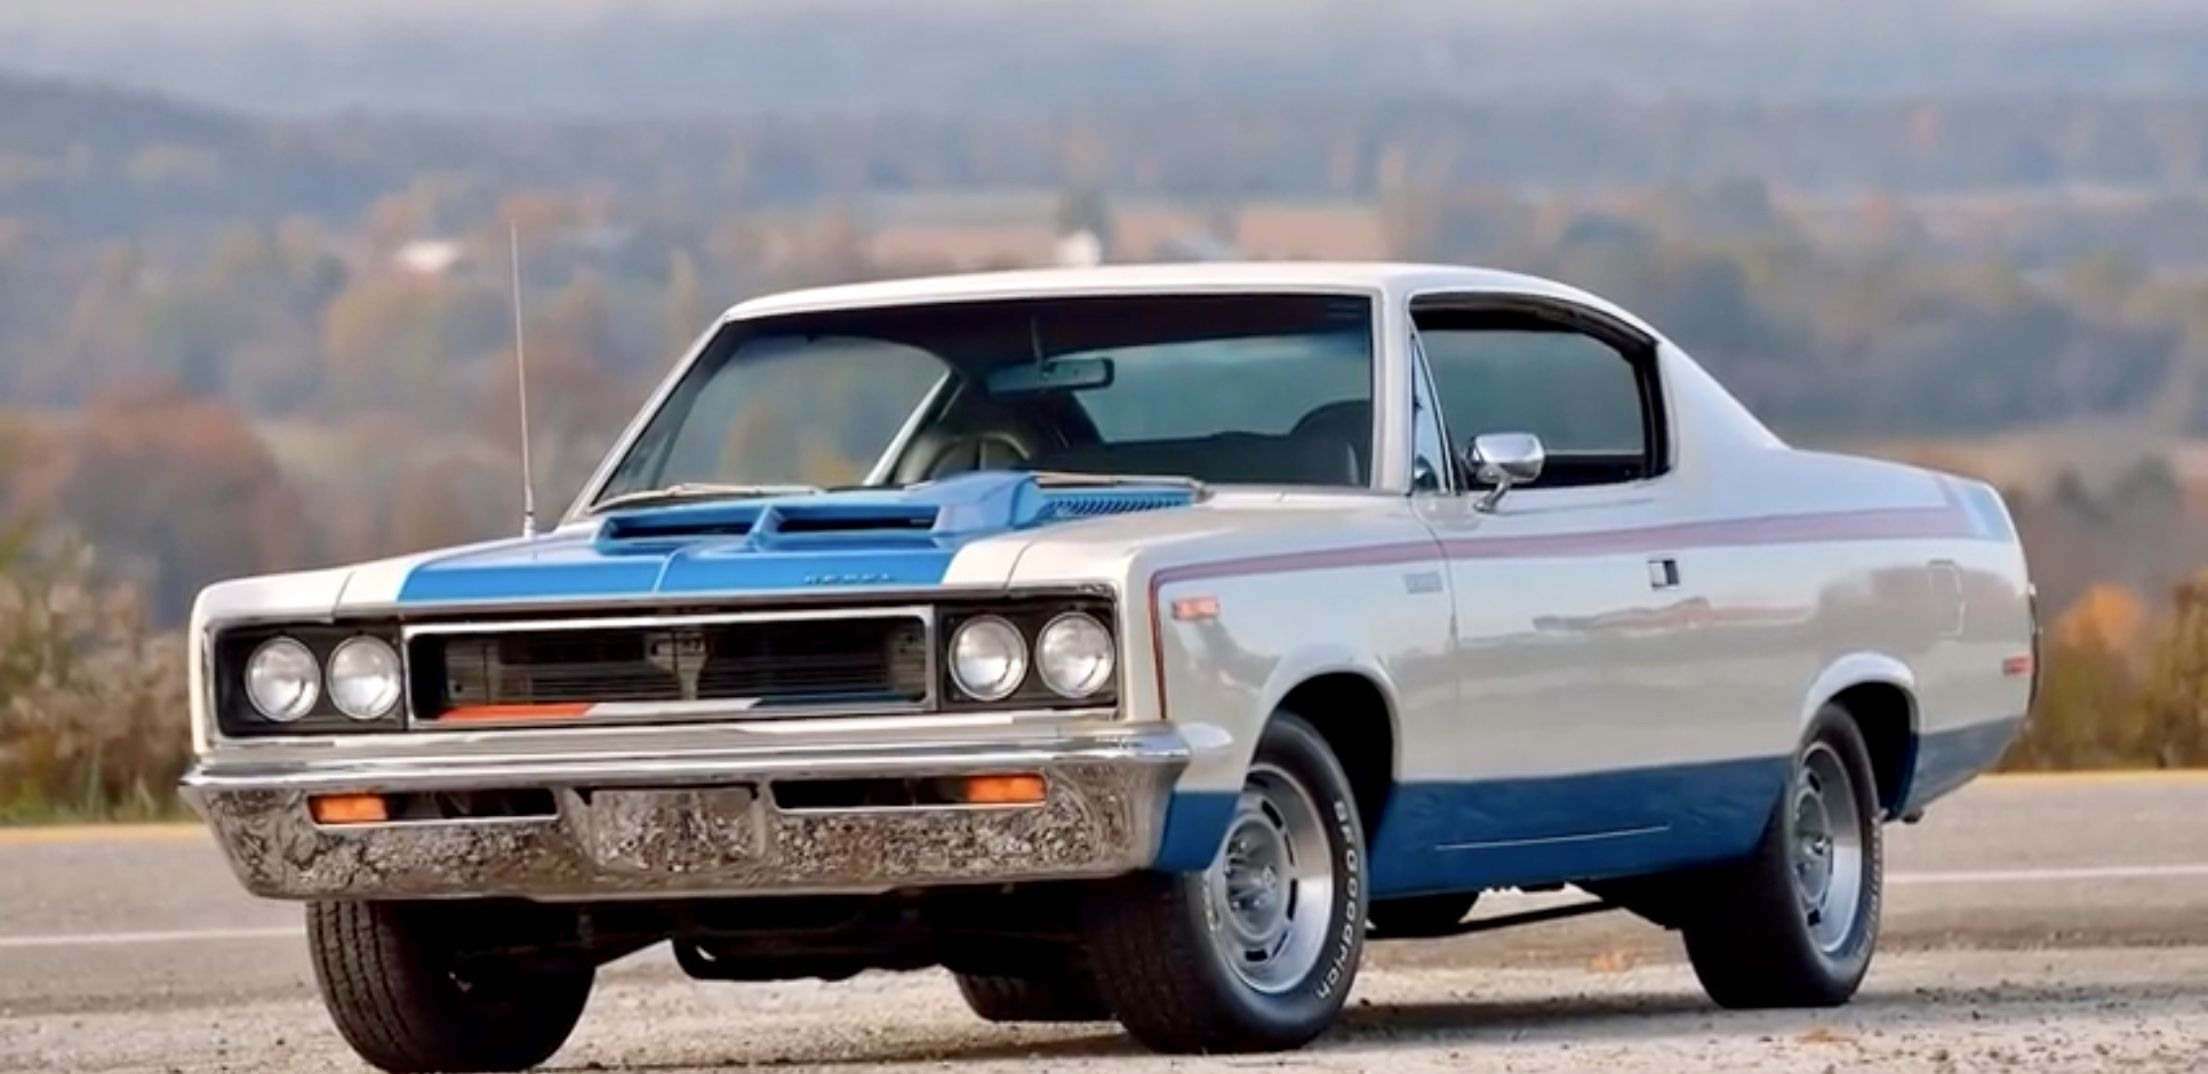 Pin By Salvatore Disanto On Cool And Retro In 2020 Muscle Cars